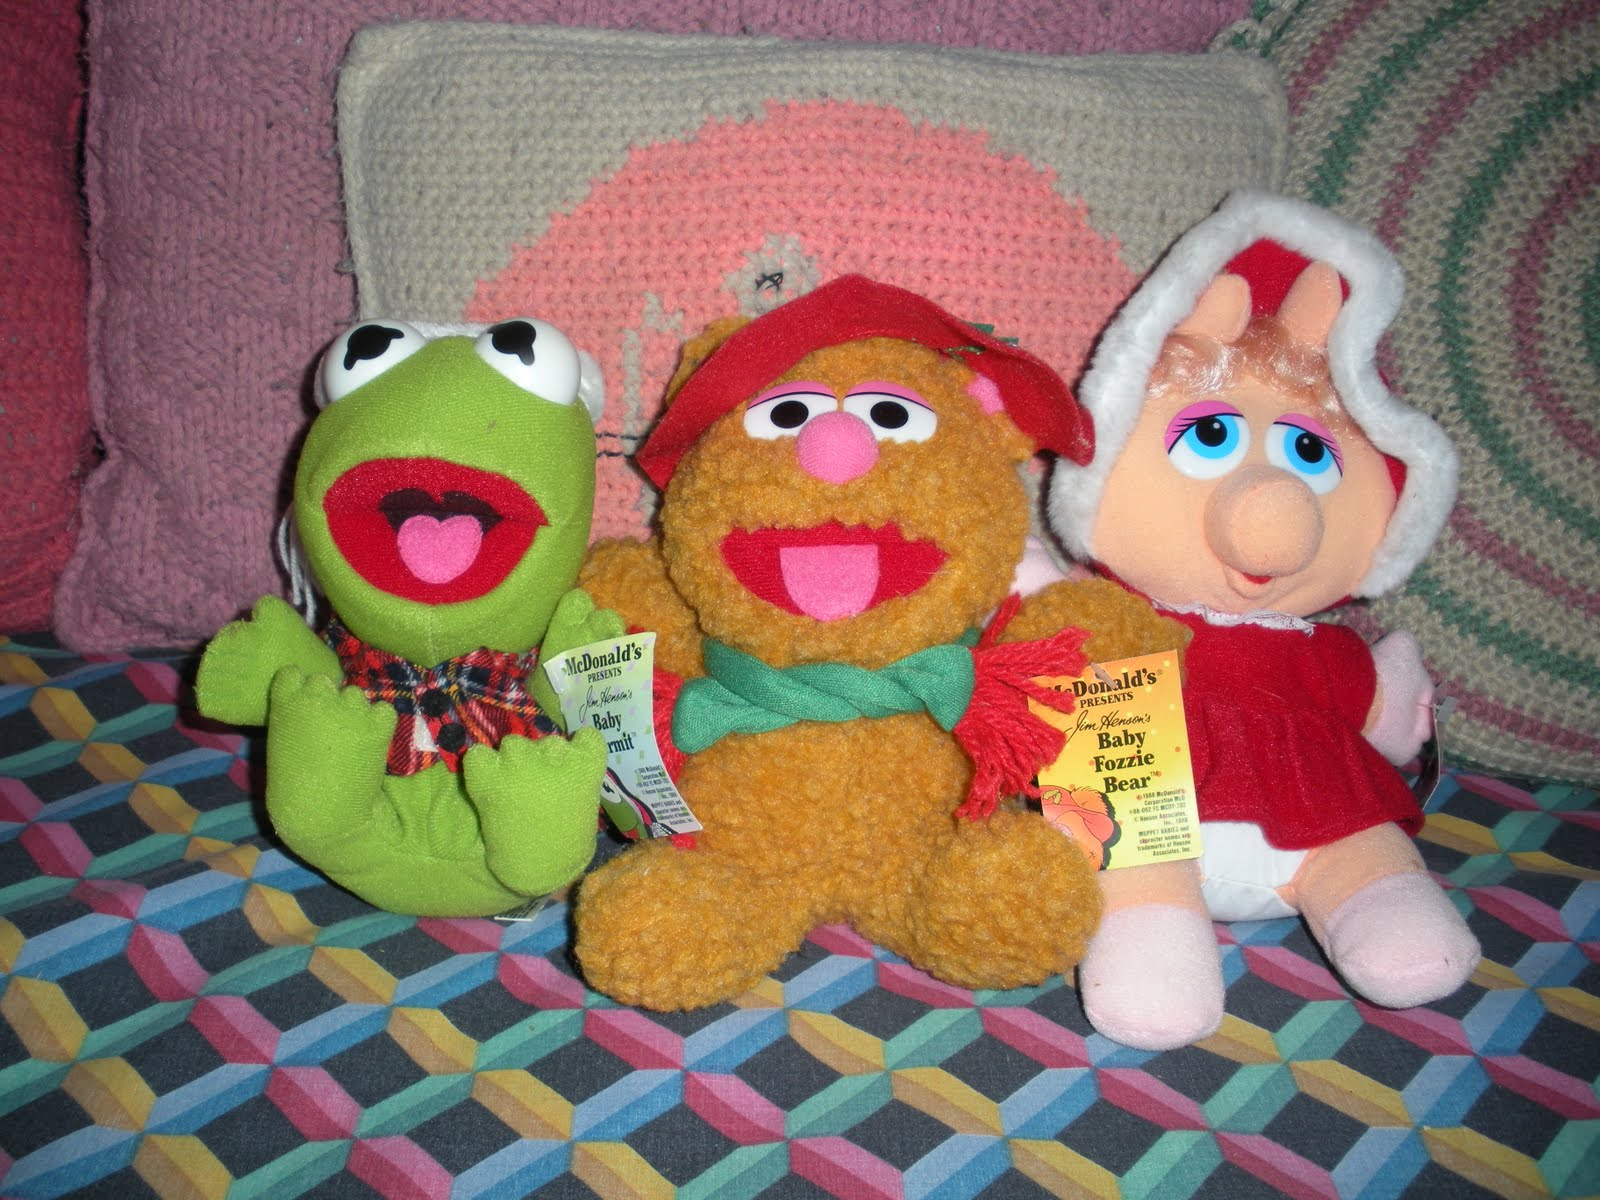 my aunt al got me the stuffed animals from mcdonalds sometime in the early 80s which are also when i got the other decorations i used to love decorating - 1980s Christmas Decorations